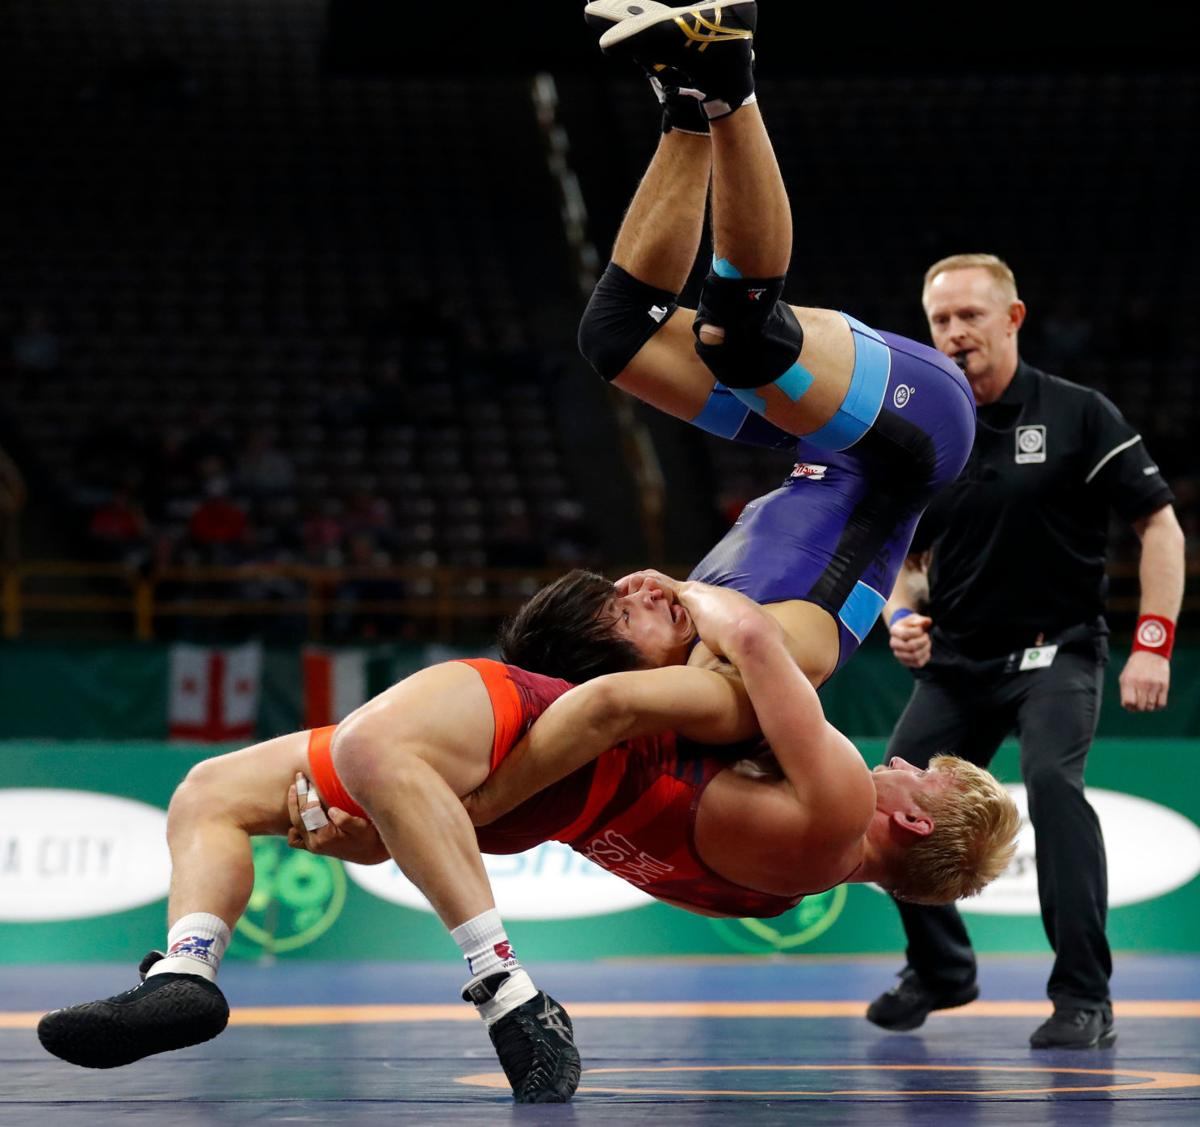 Freestyle World Cup Wrestling